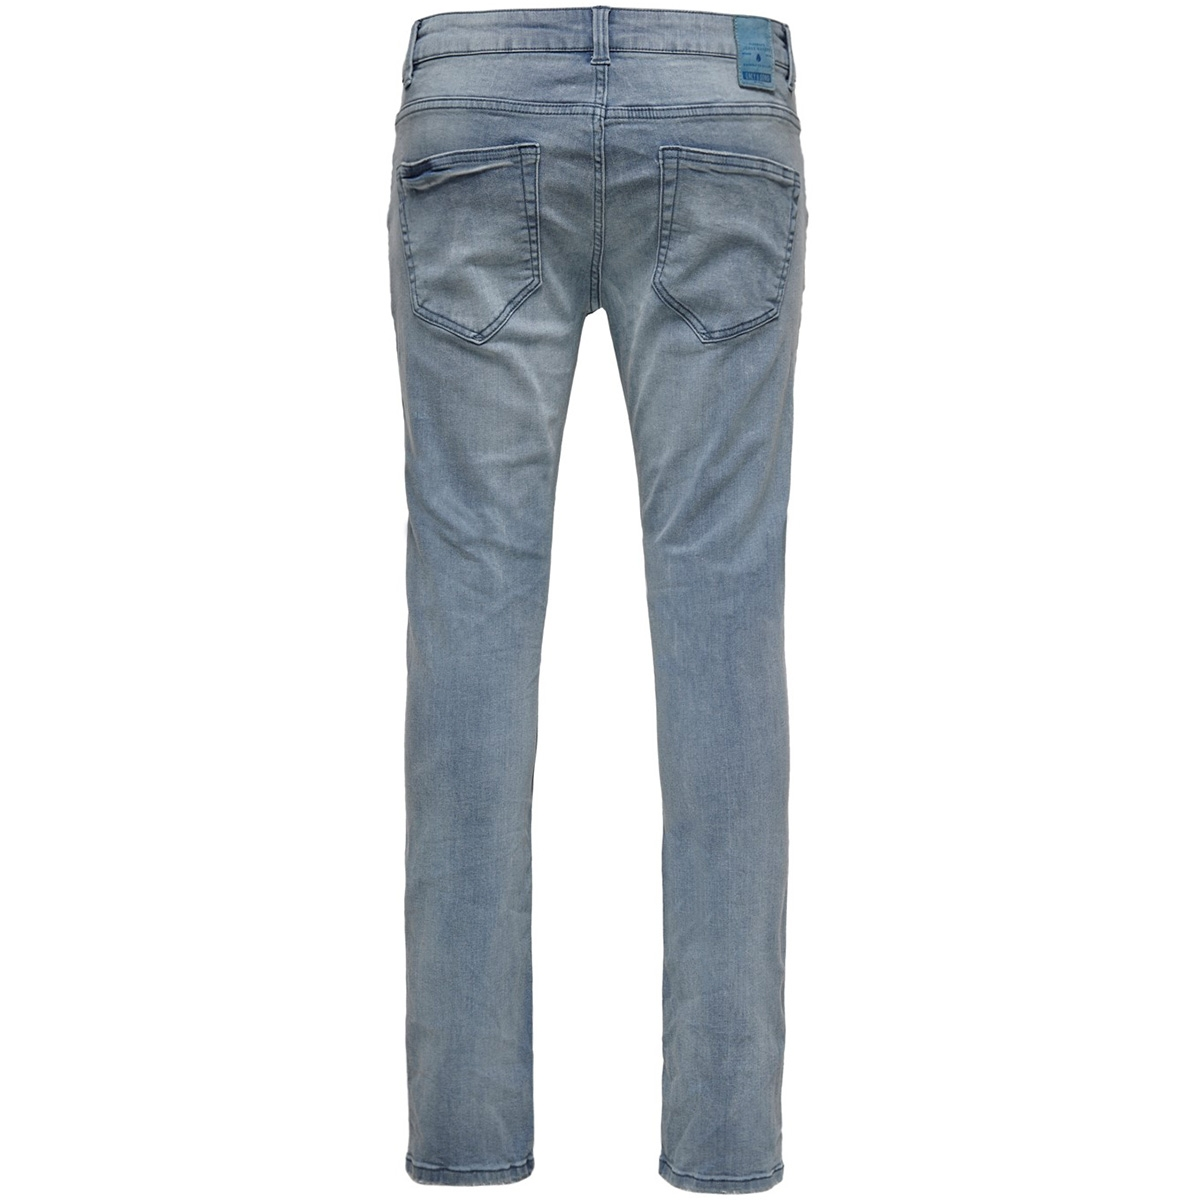 onsloom blue grey pk 3627 noos 22013627 only & sons jeans grey denim